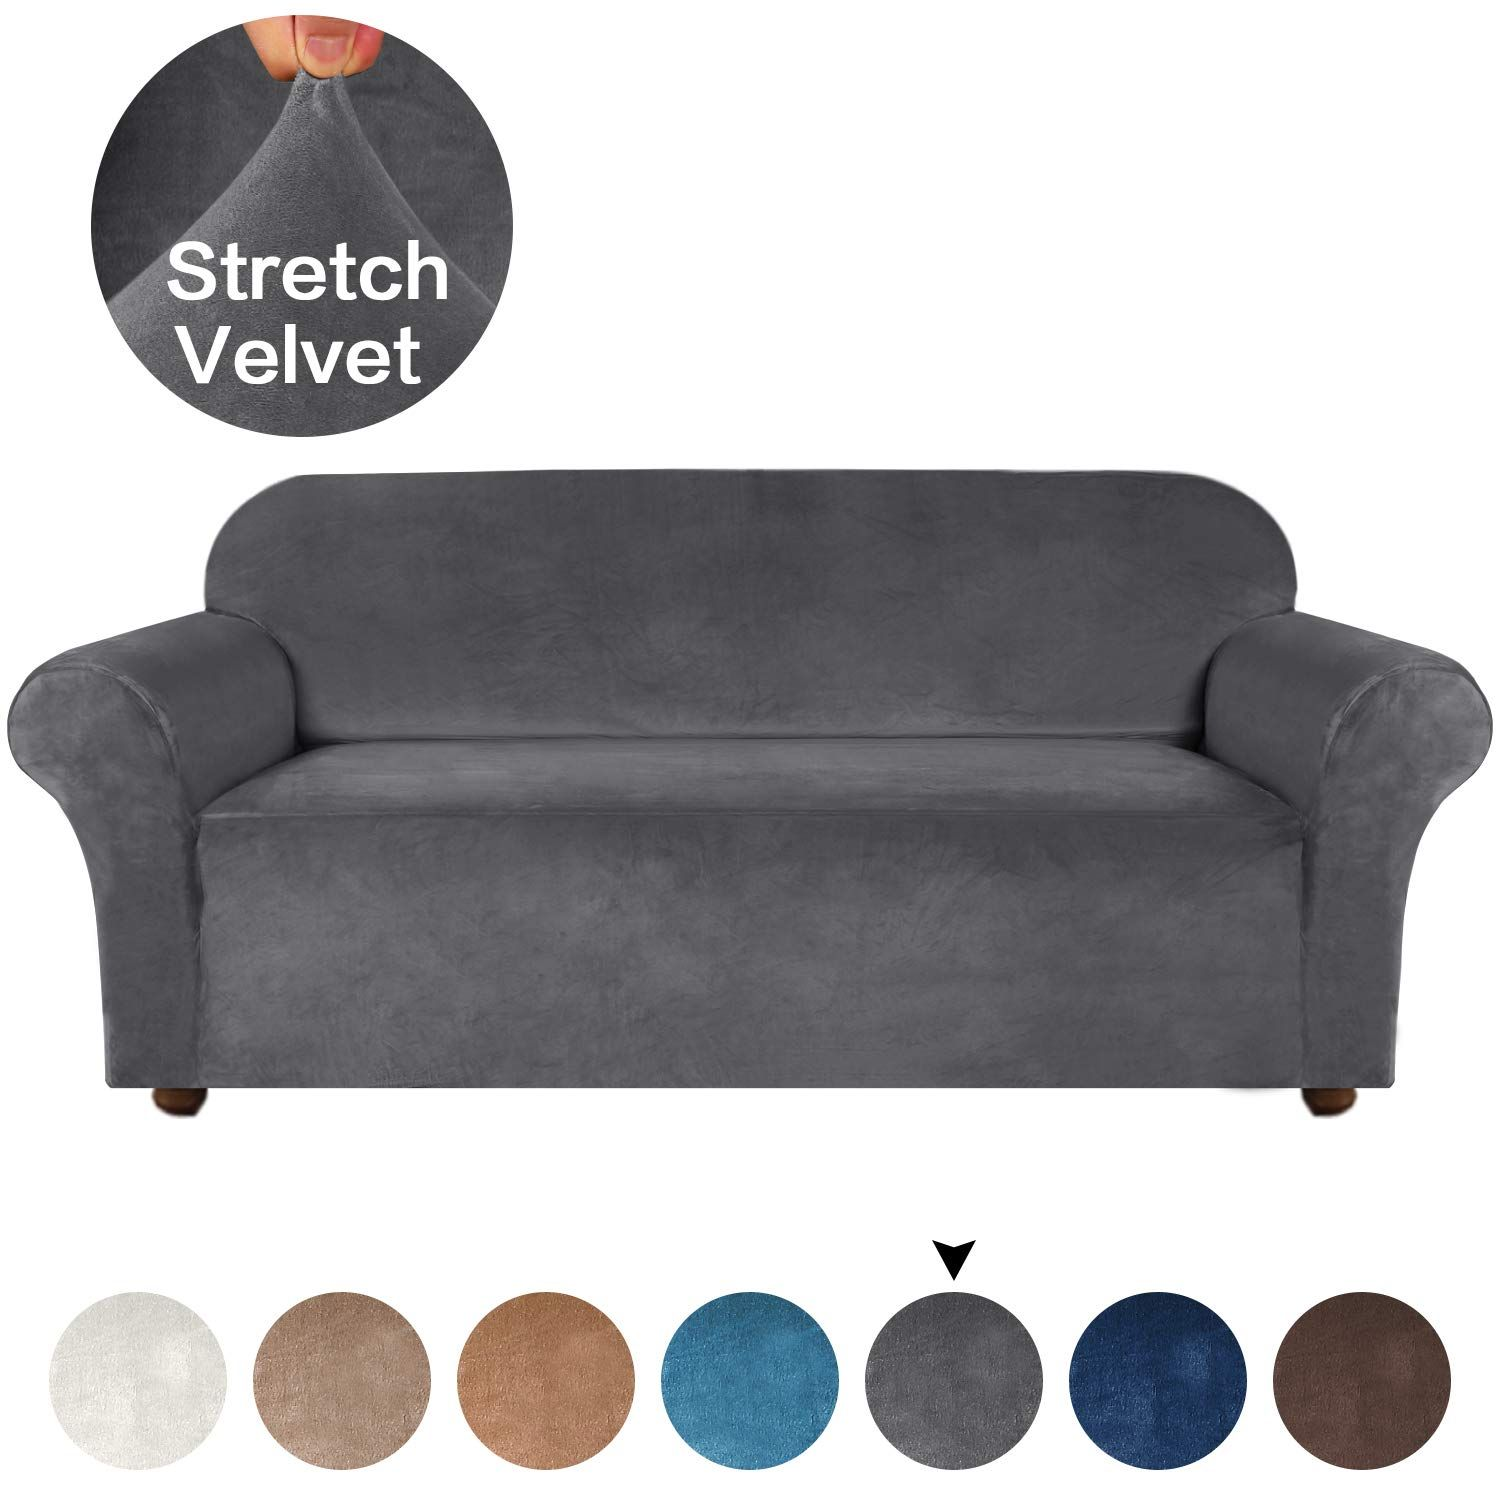 Amazon Com Velvet Plush Couch Cover For Sofa Slipcover Stylish Luxury Furniture Covers 1 Piece Furniture Protector In 2020 Plush Sofa Plush Couch Furniture Protectors